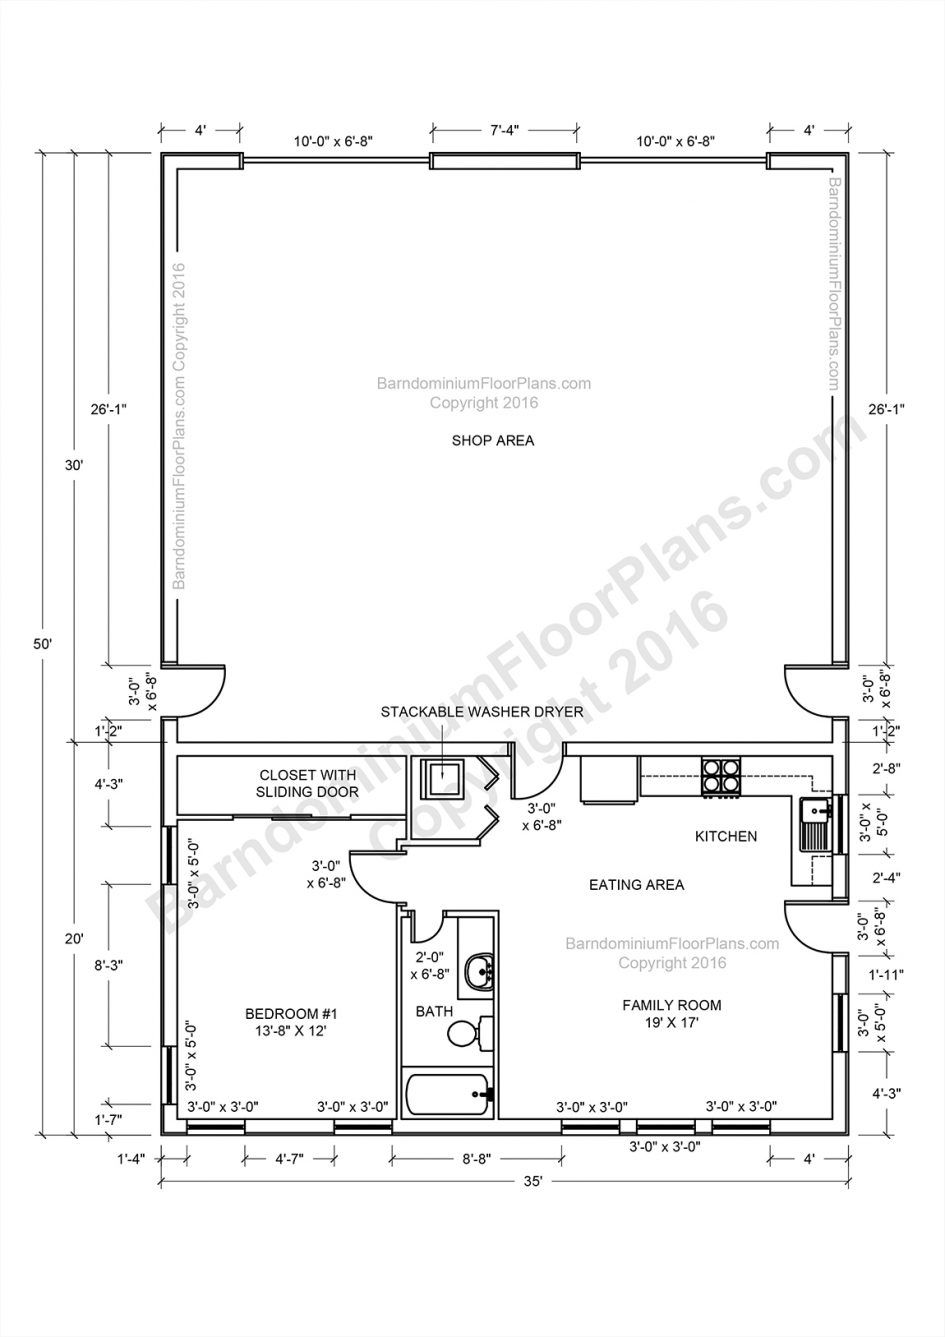 Apartments Barndominium Floor Plans Pole Barn House And Metal One Bedroom Apartment Building This Is A Bath Plan For Foot Wide L Flat Cabin Self Contained